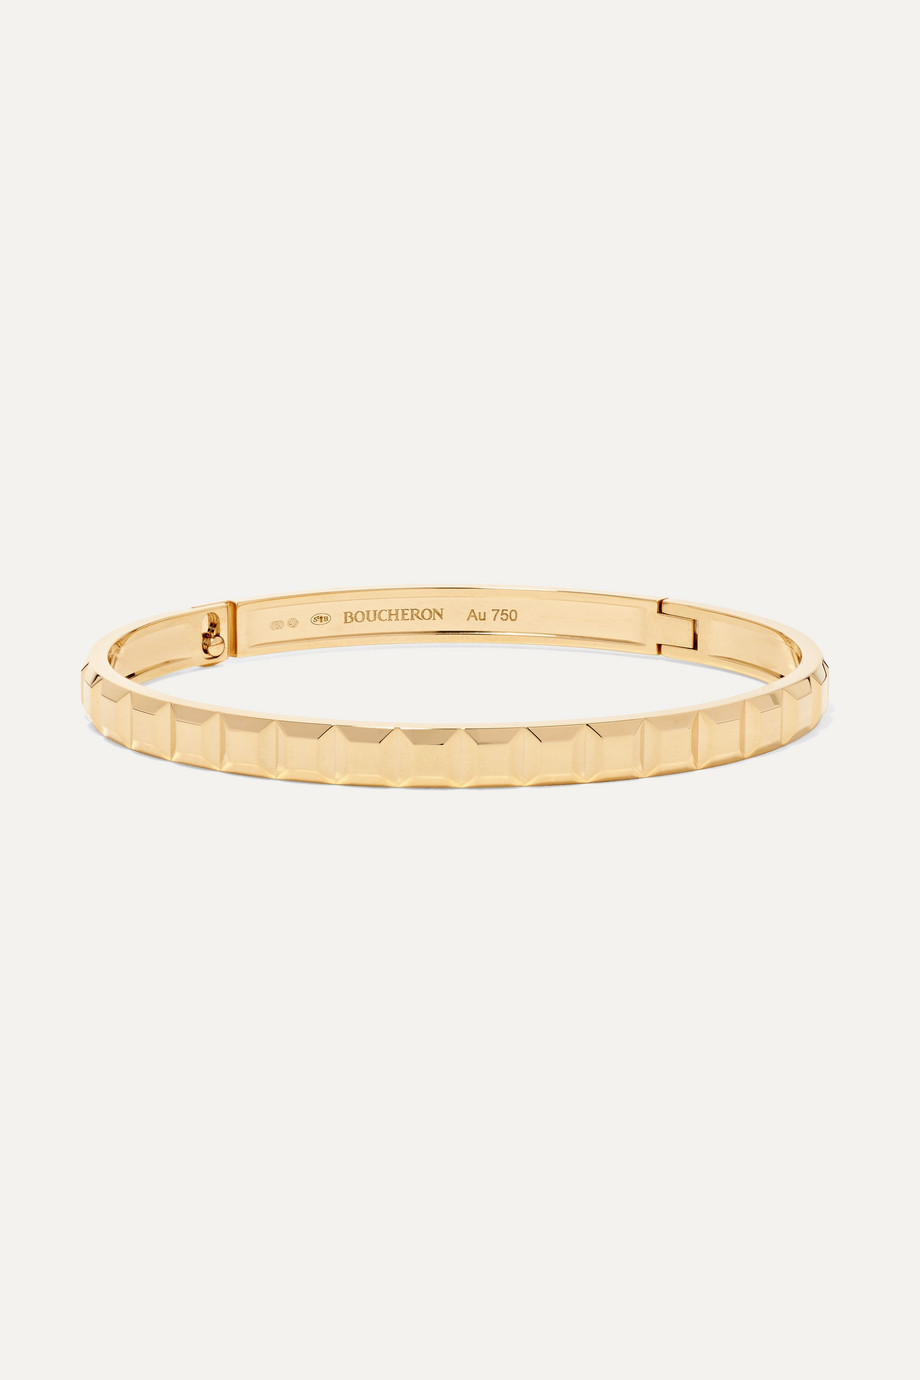 Boucheron Quatre Clou De Paris 18-karat gold bangle